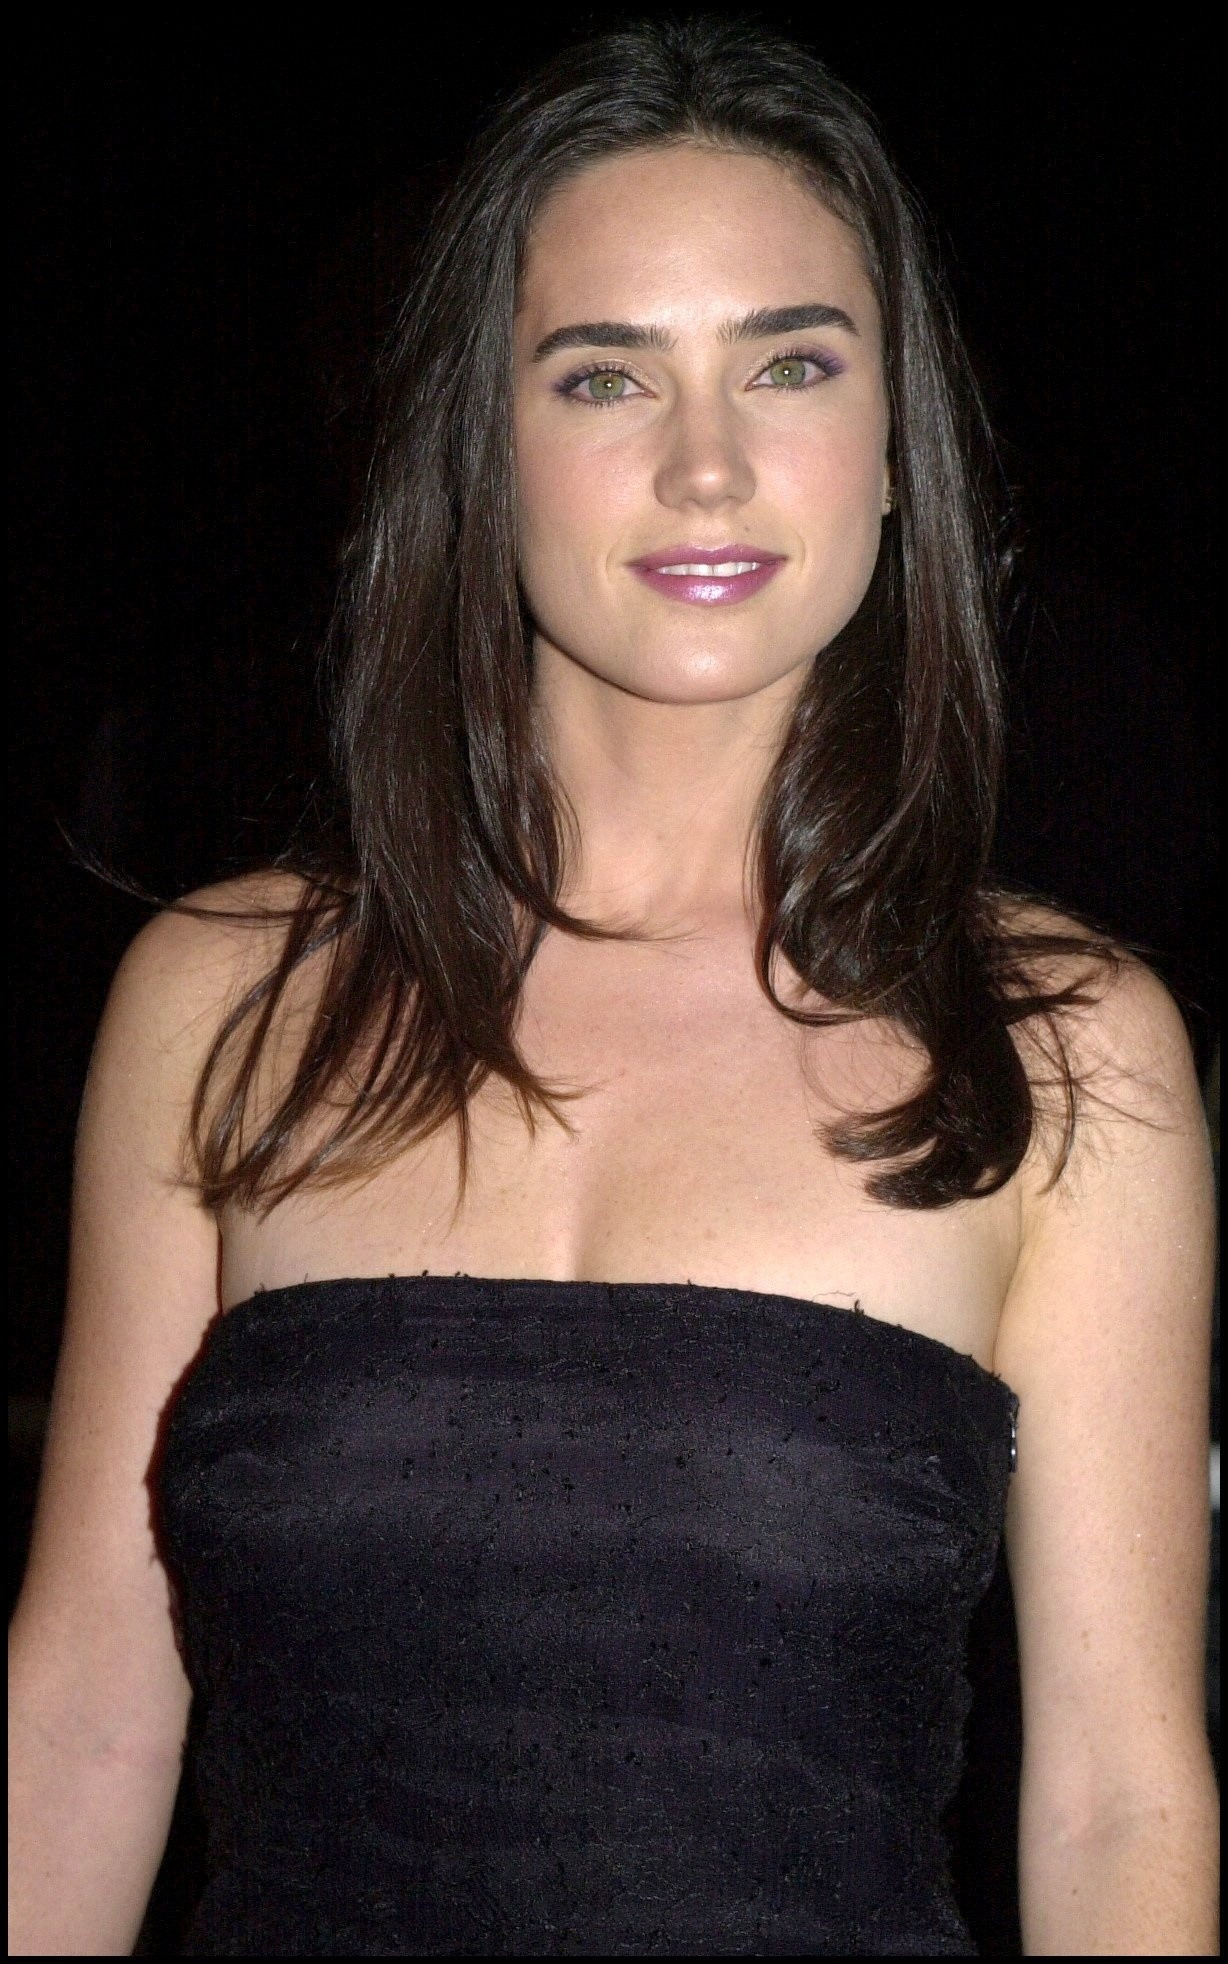 jennifer connelly - photo #46